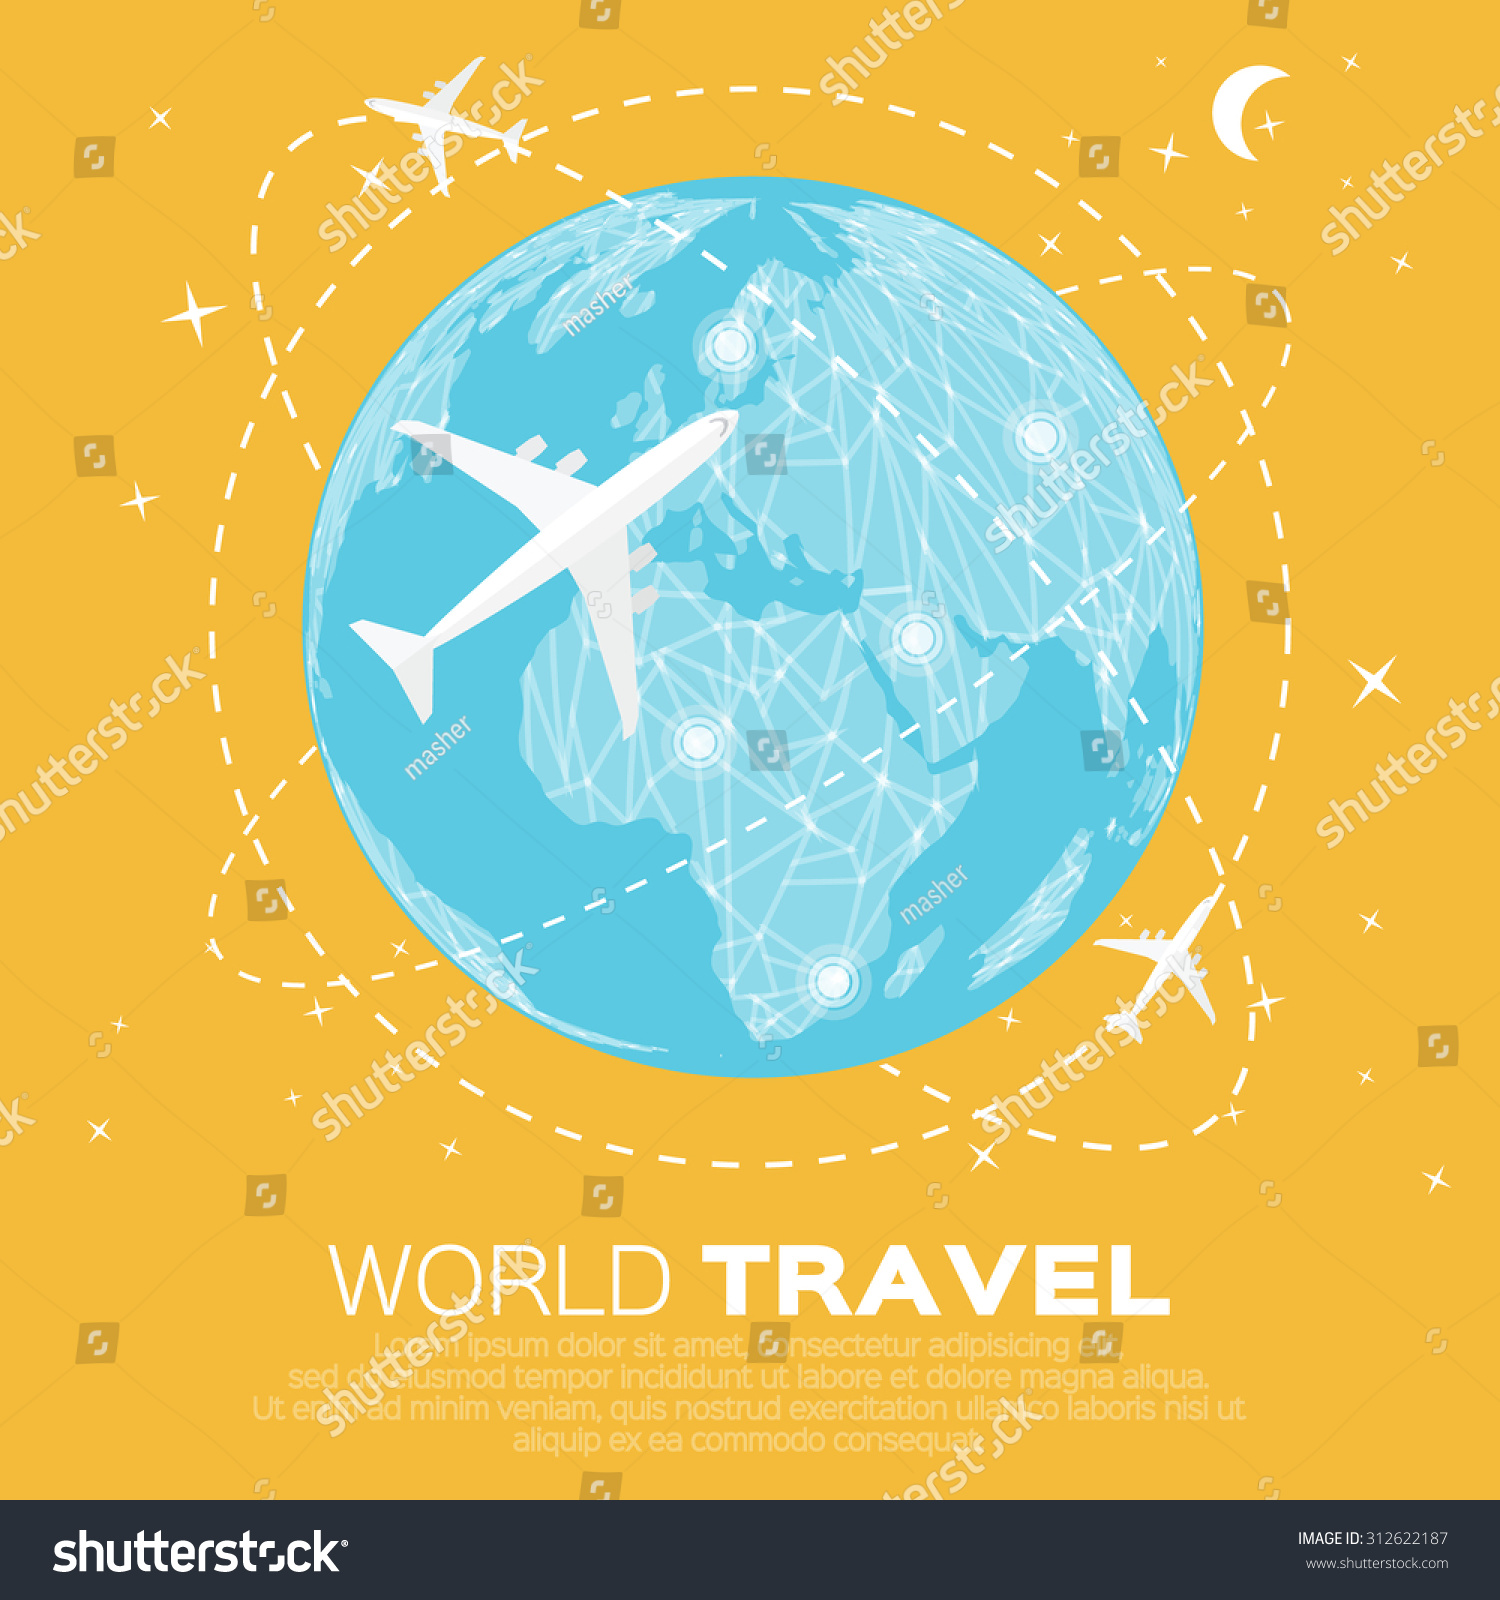 Travel world map background polygonal style vectores en stock travel world map background in polygonal style with top view airplane vector illustration design gumiabroncs Gallery